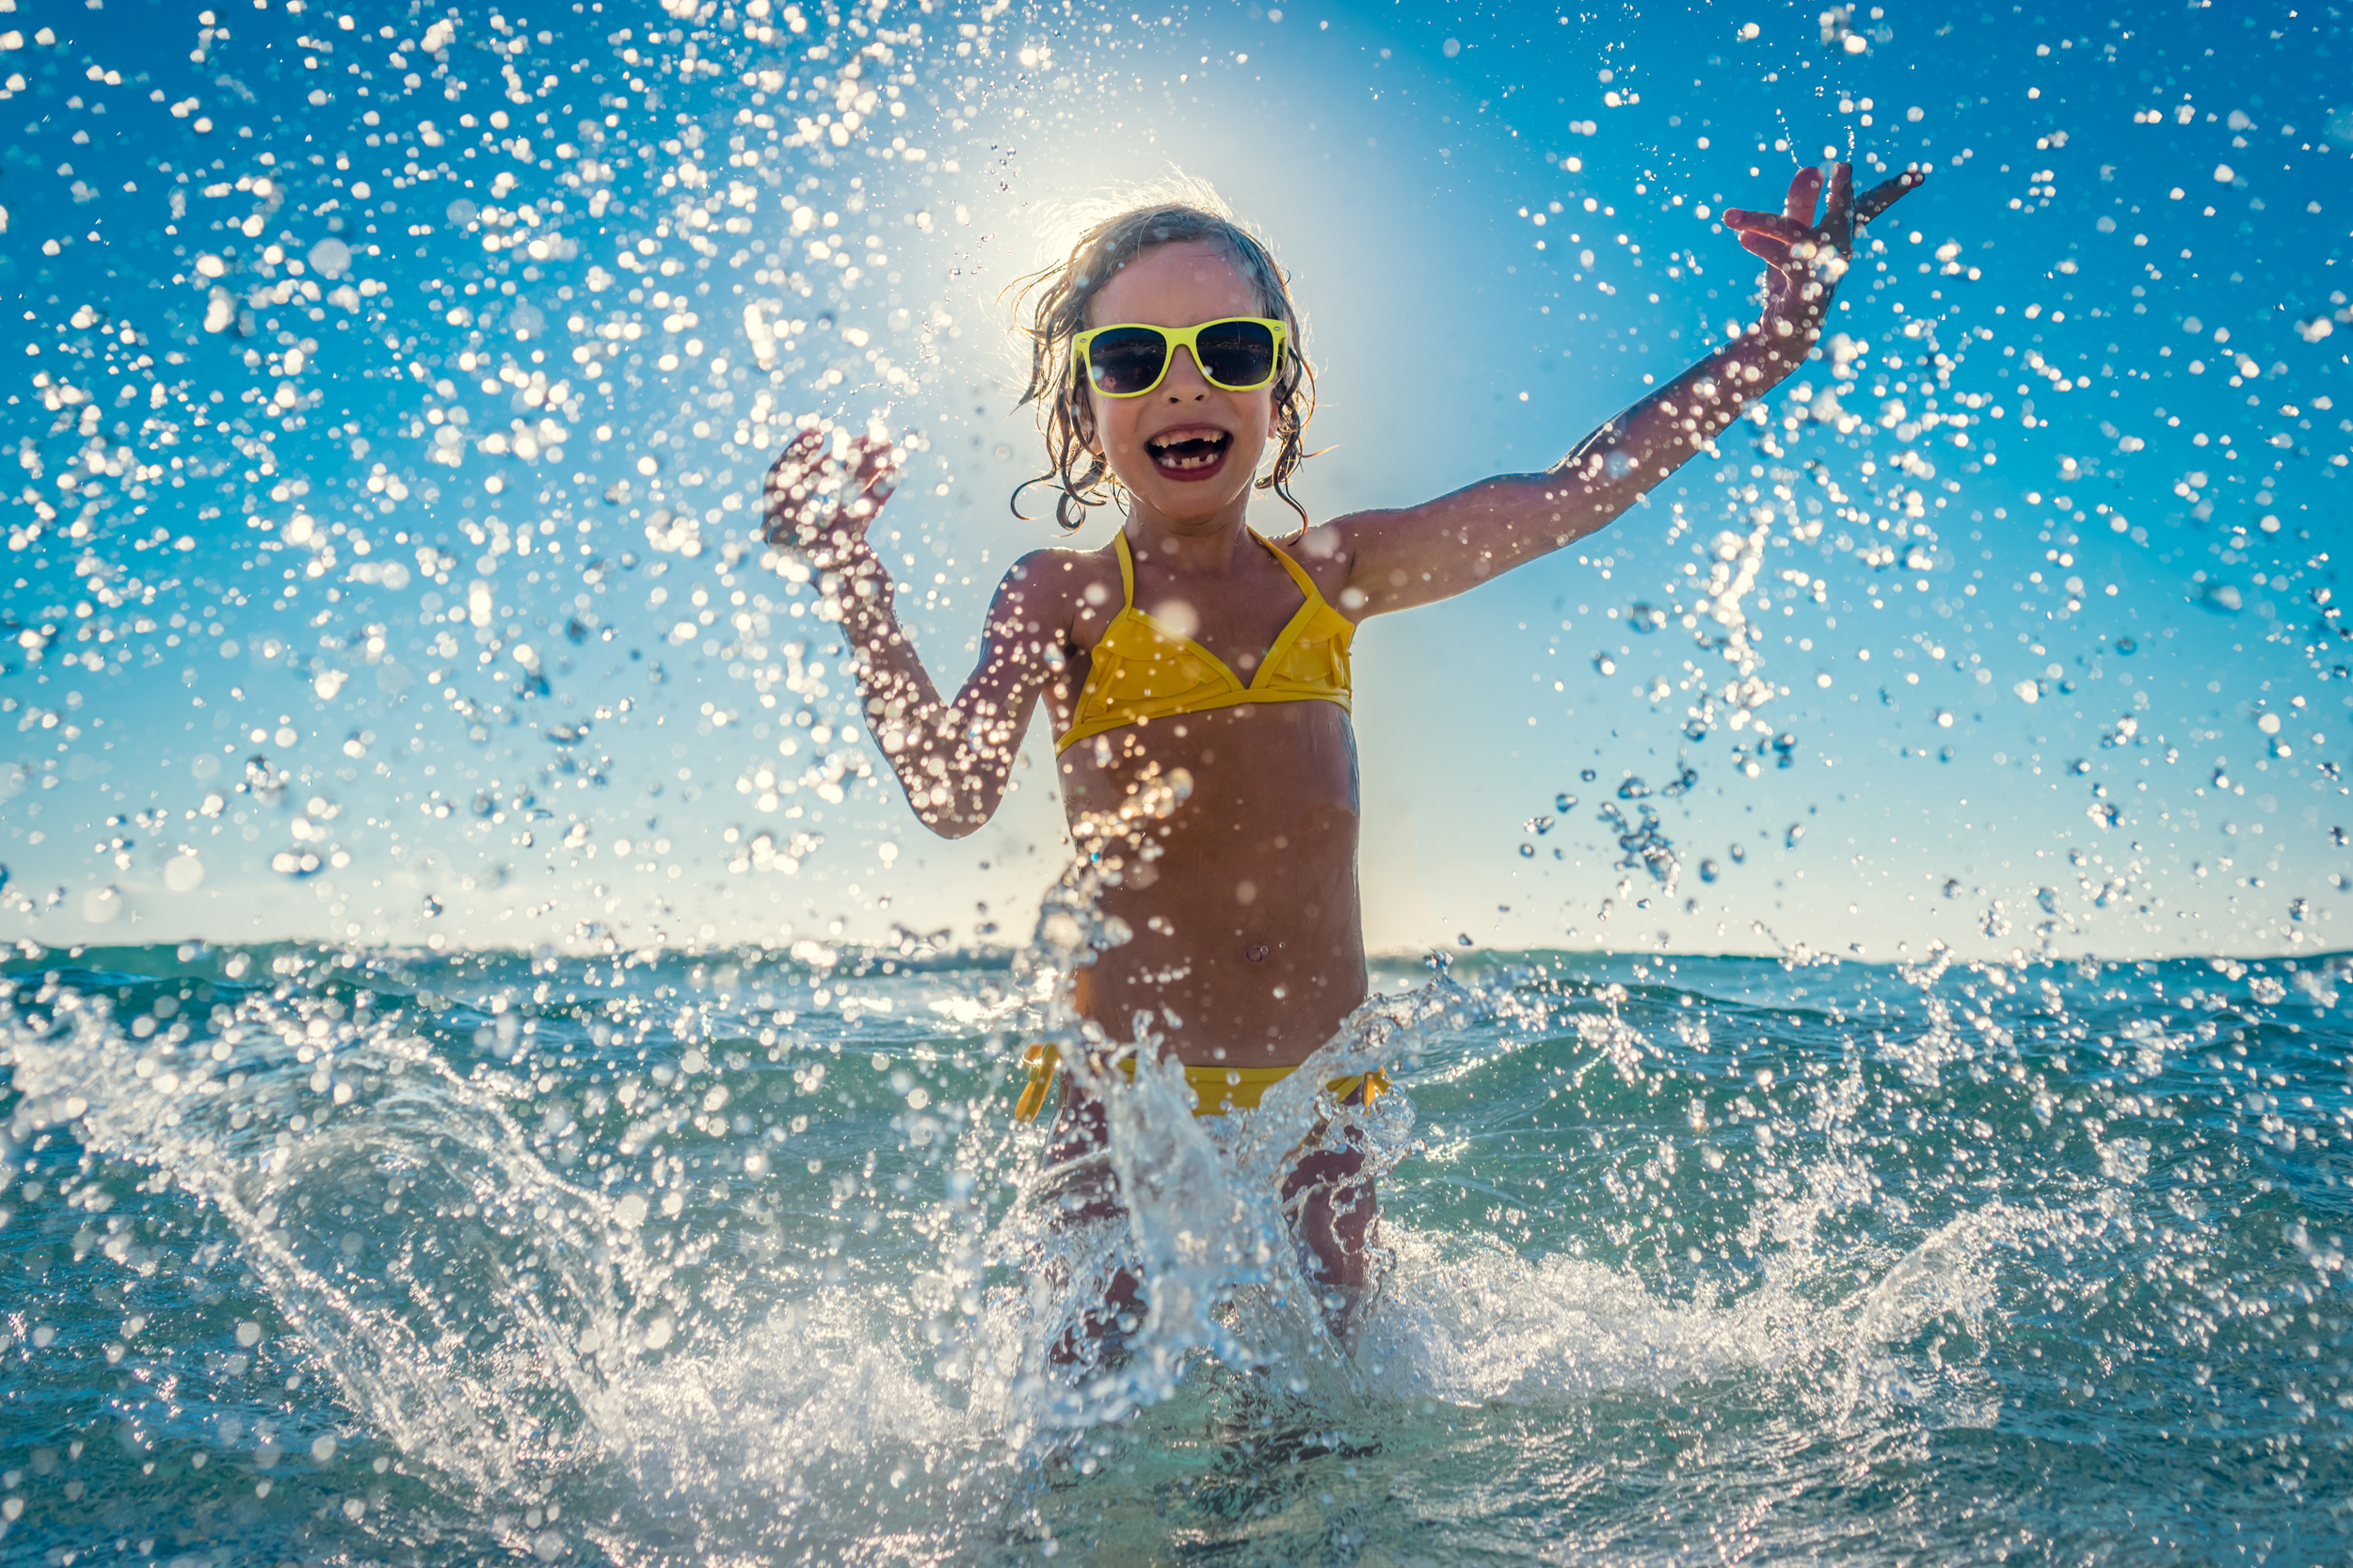 Leisurely Summer Reading Childs Play >> 70 Fun Summer Activities For Kids San Diego North County 2018